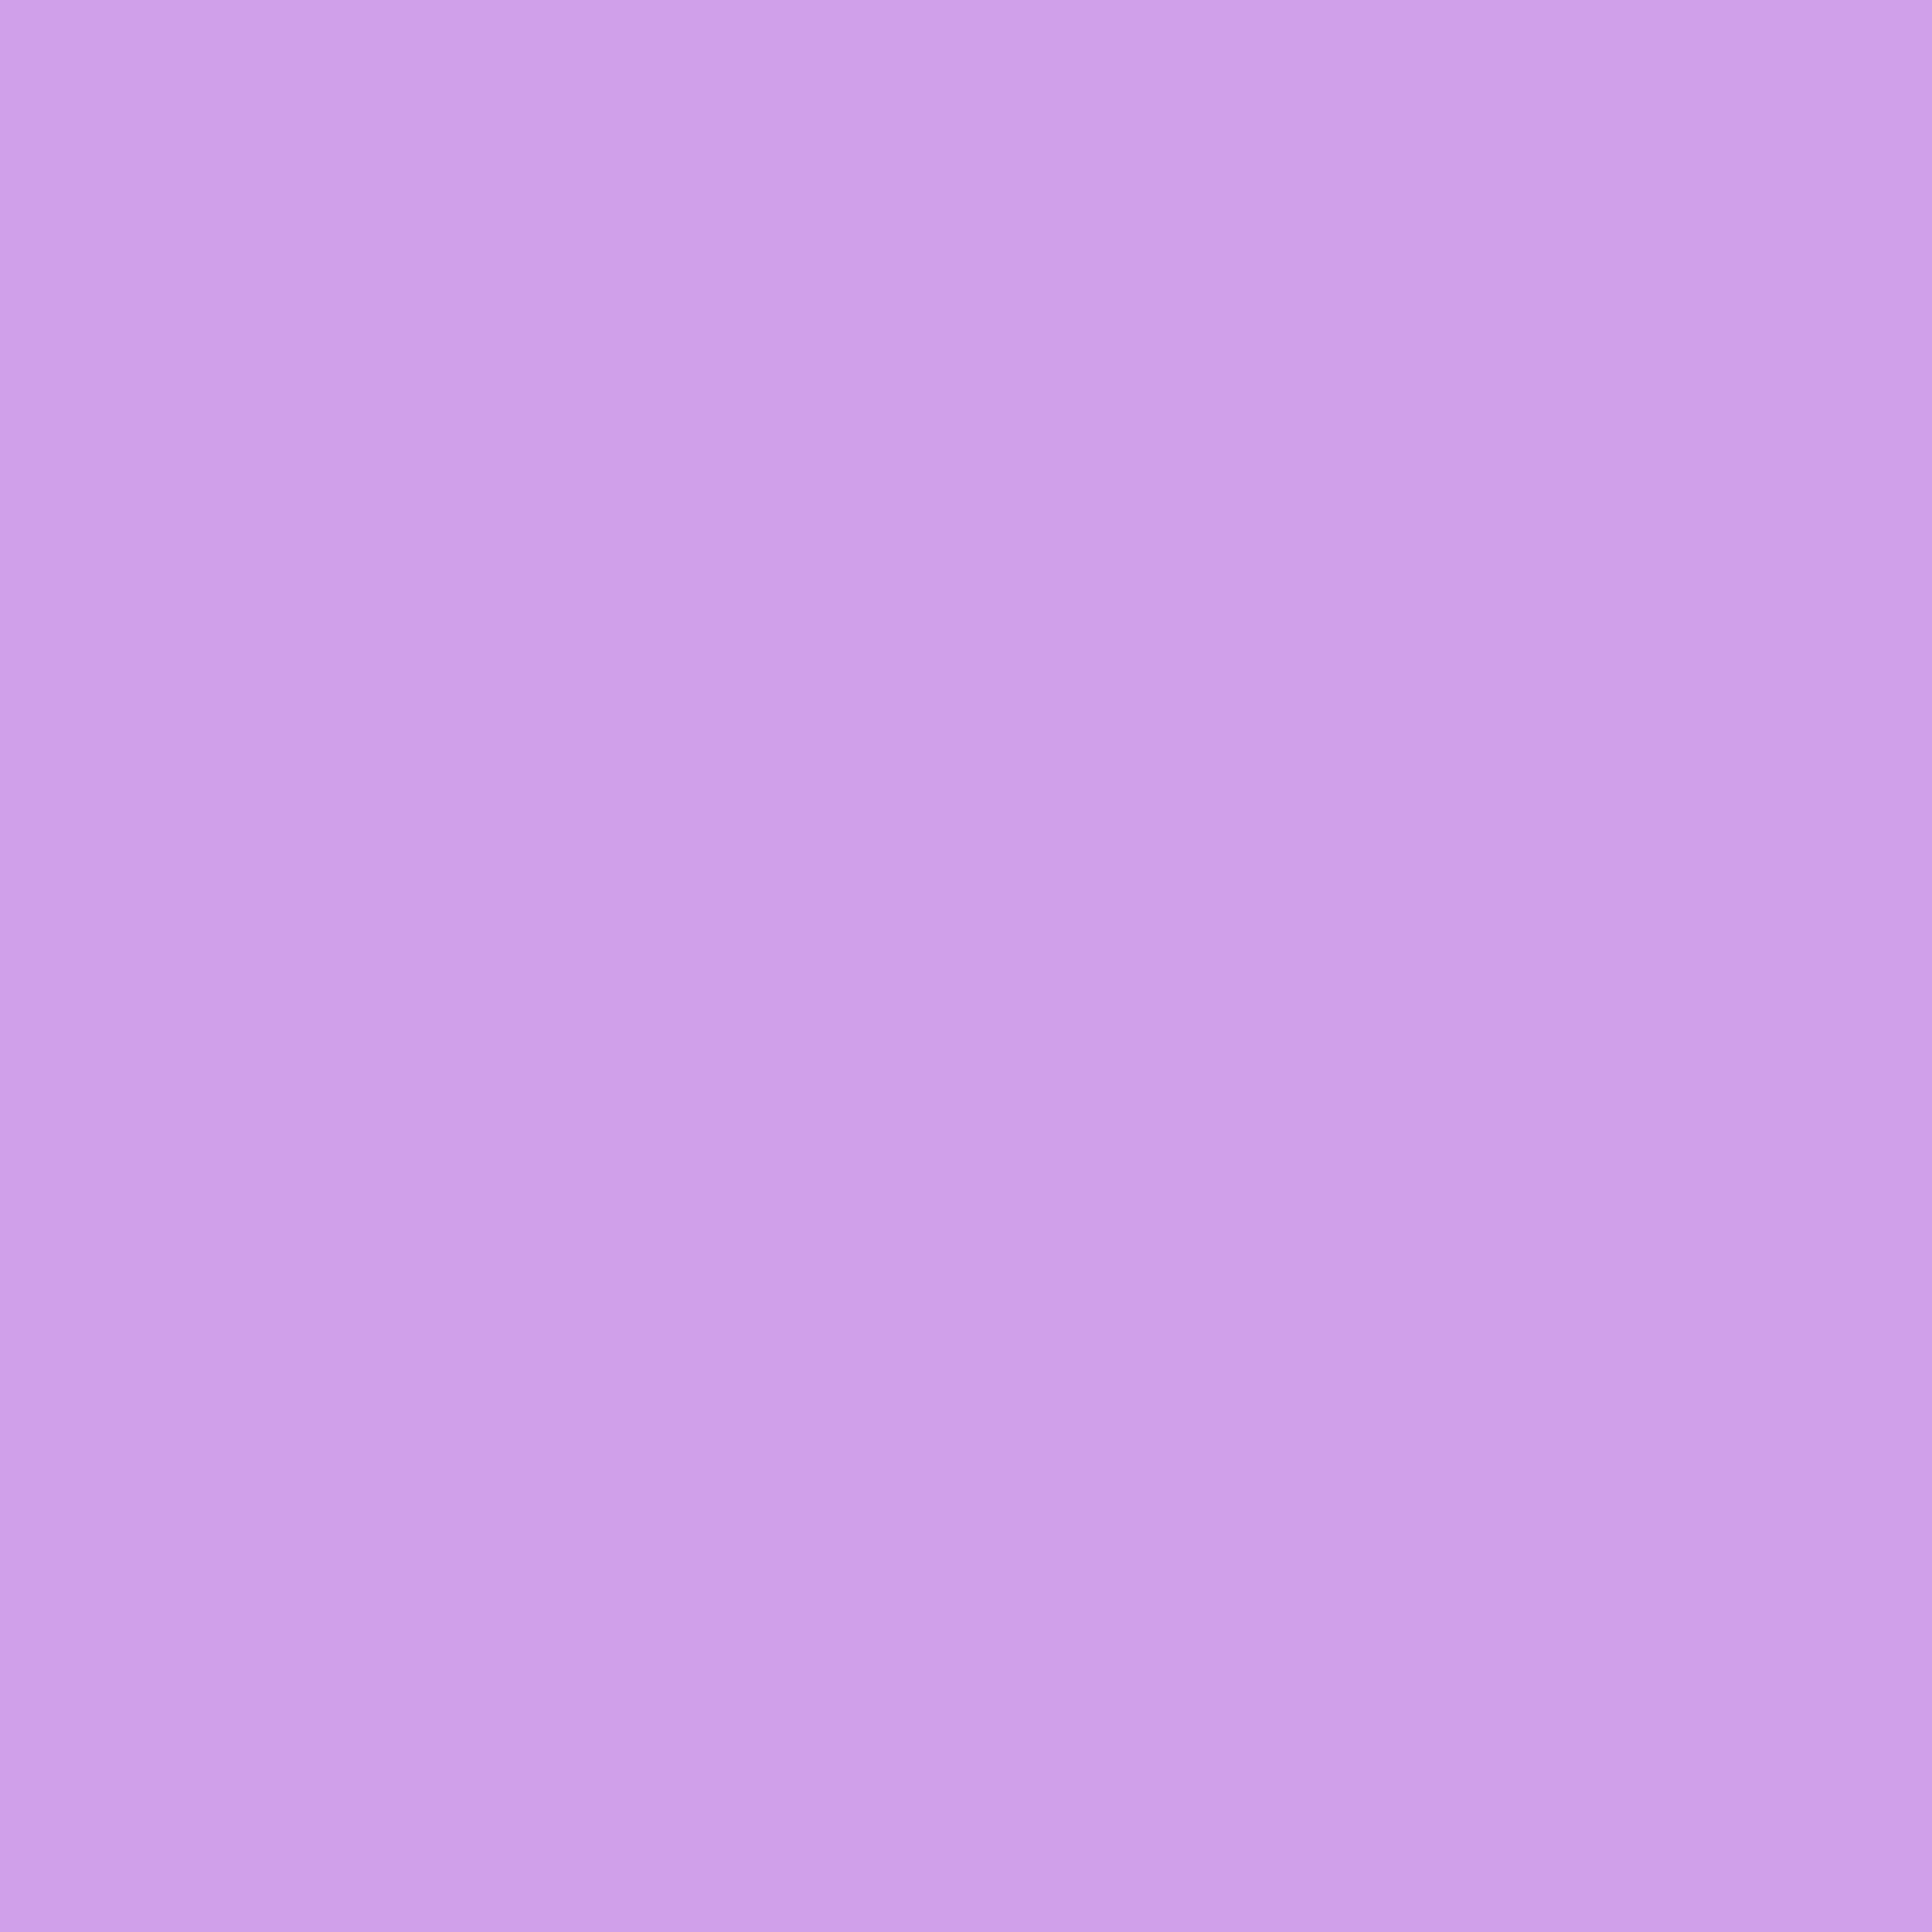 2732x2732 Bright Ube Solid Color Background